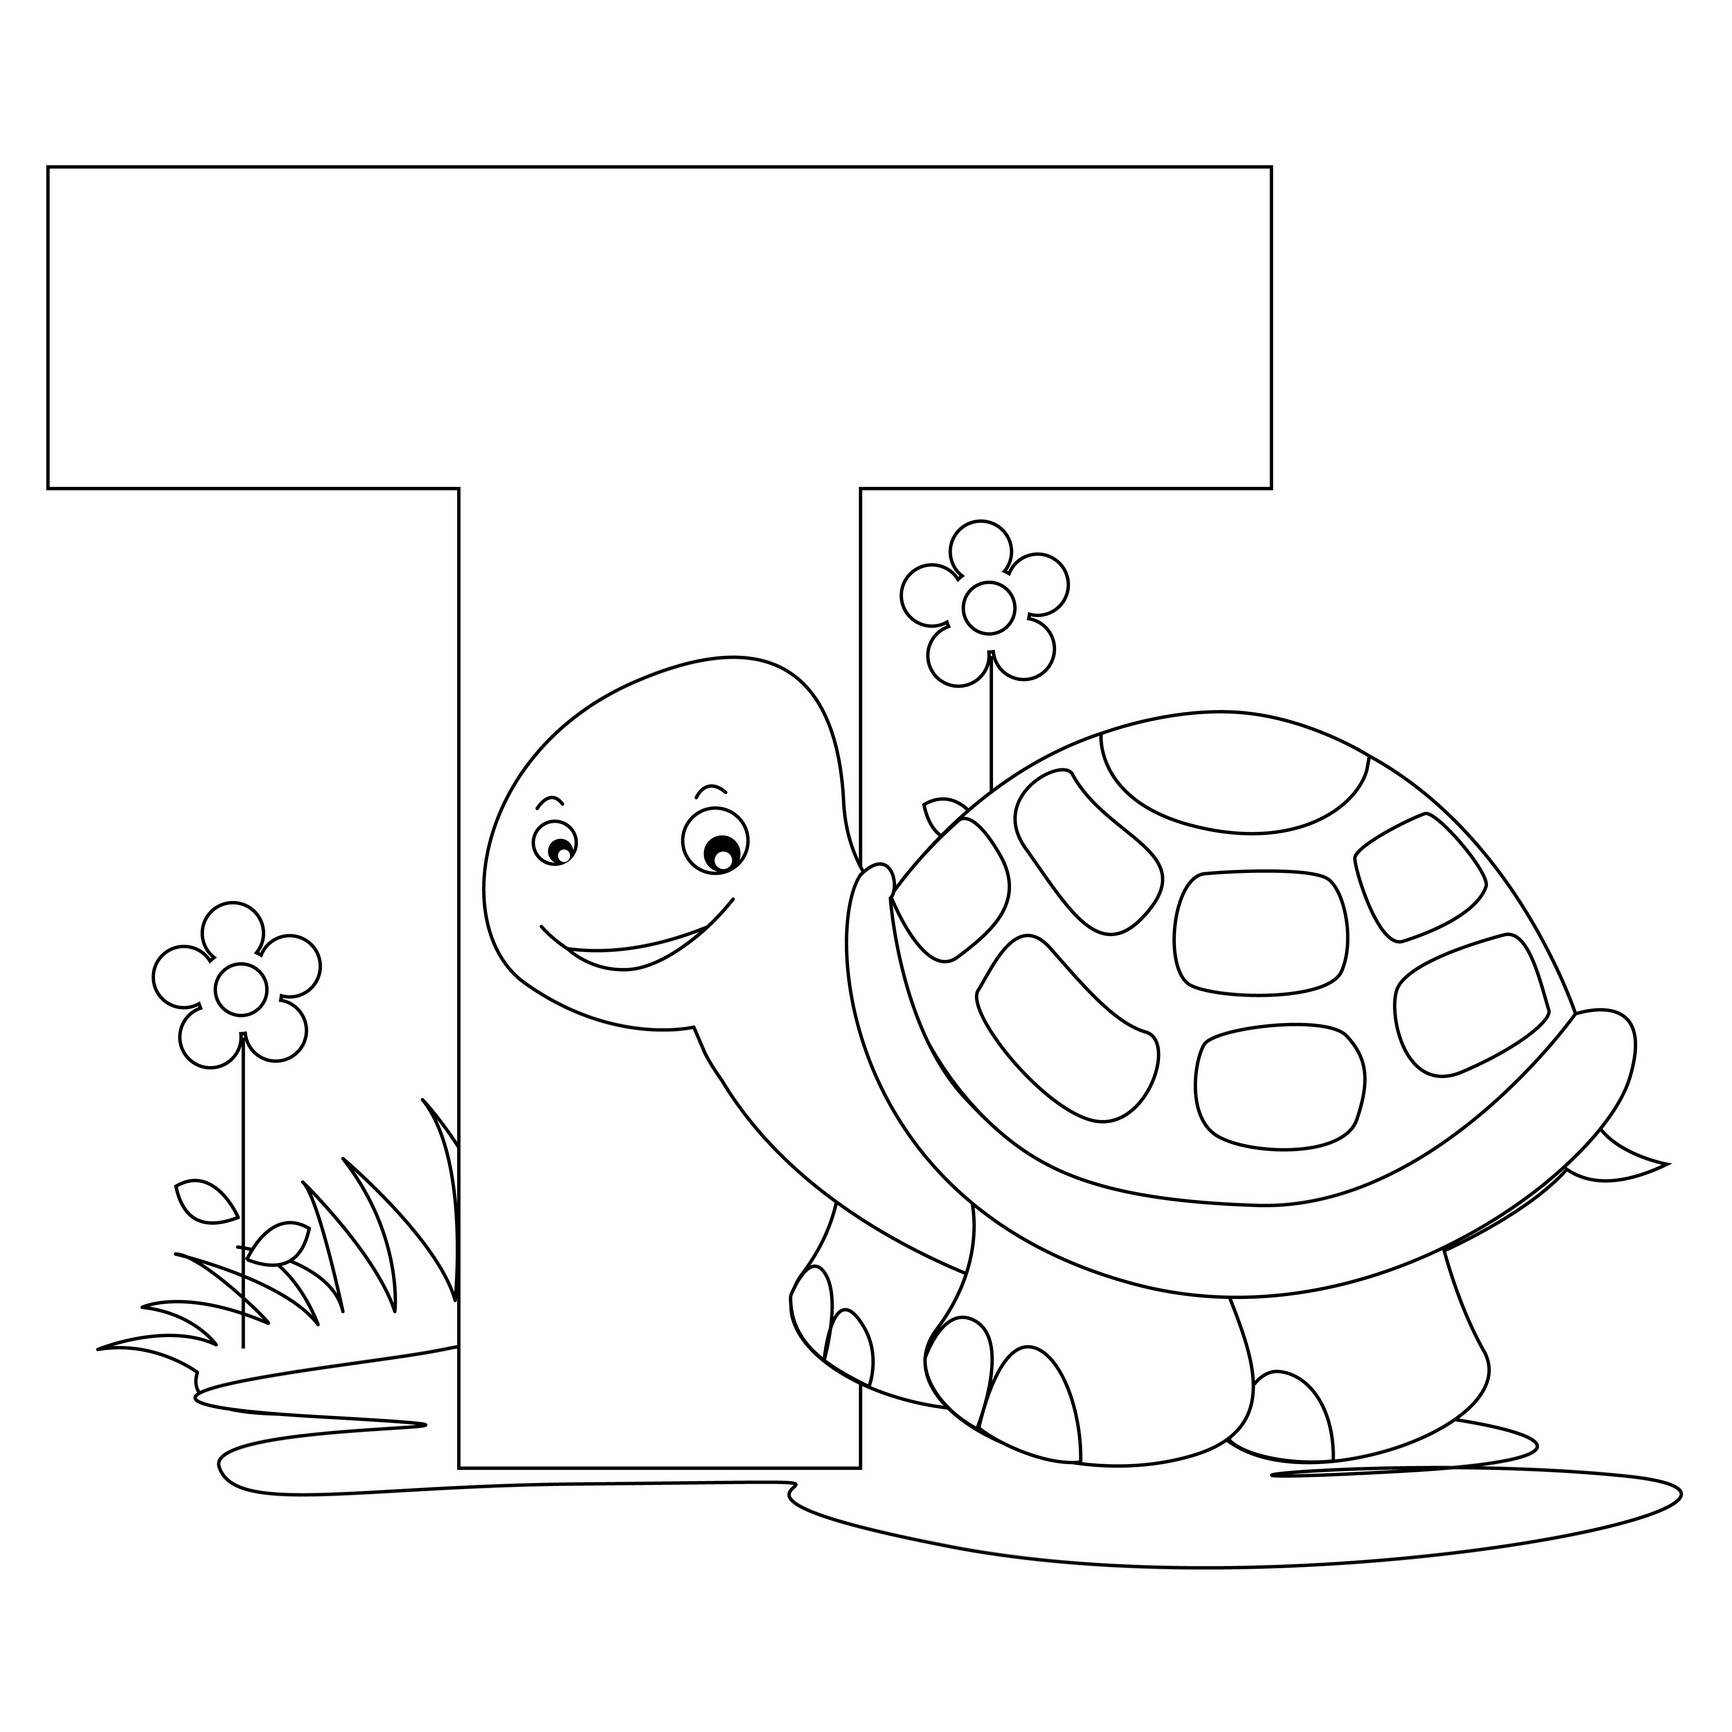 colouring pictures of alphabets free printable alphabet coloring pages for kids best colouring alphabets pictures of